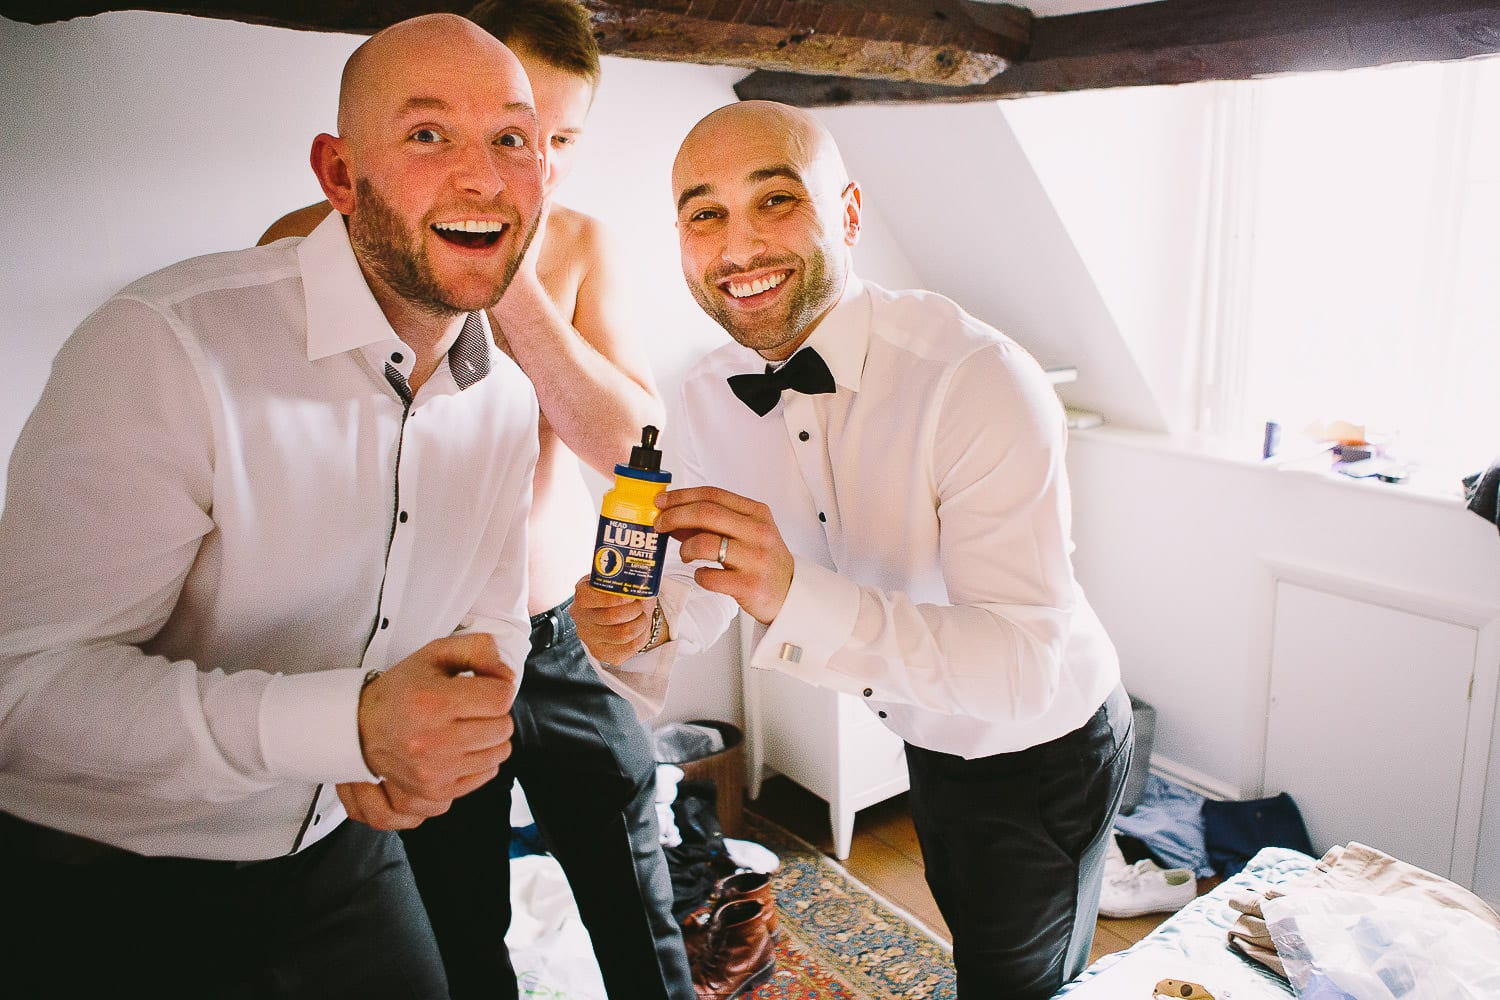 Some bald ushers holding a bottle of head lube